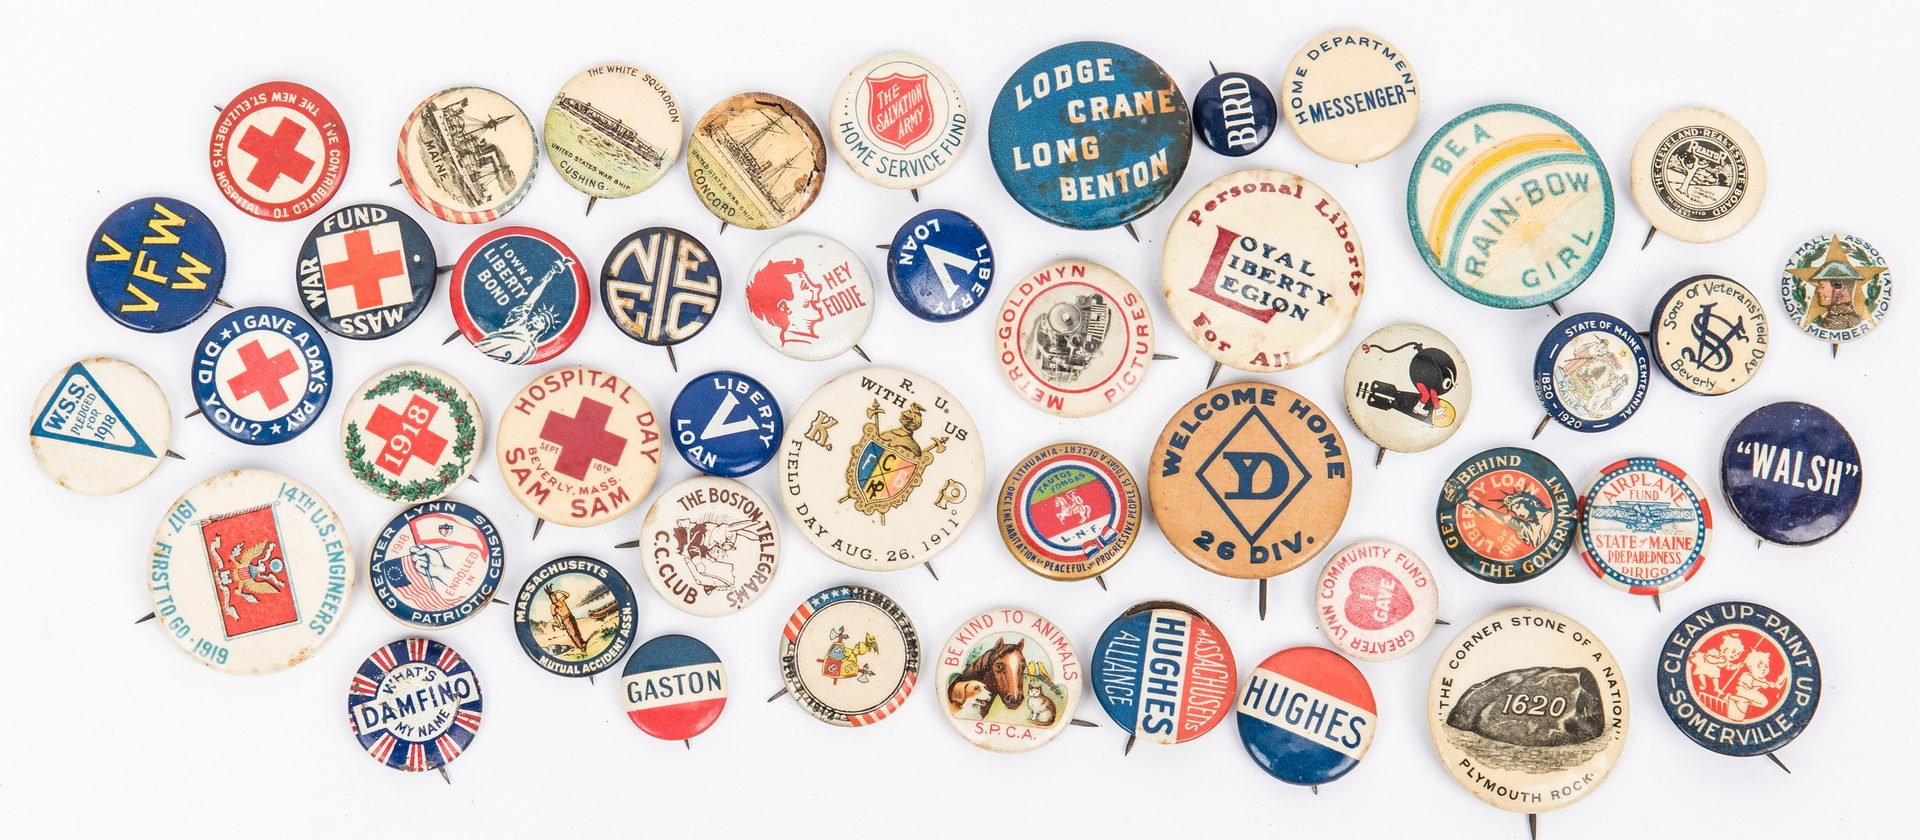 Lot 412: 88 Early Pinback Buttons, incl. Political, Cigarette, WWI, etc.